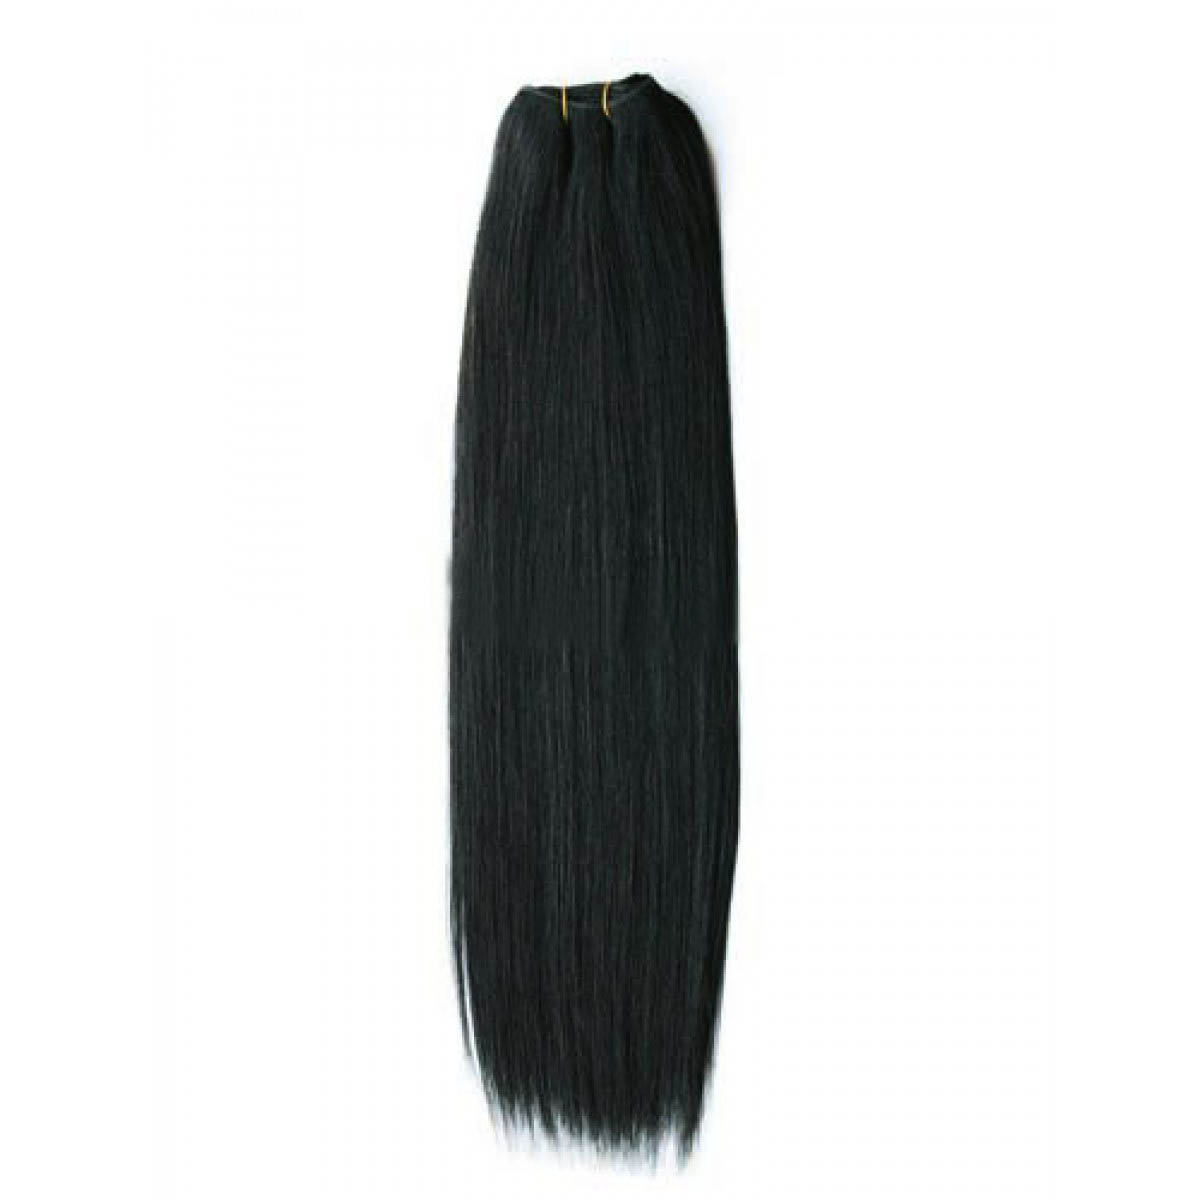 14 Inch #1 Jet Black Straight Brazilian Virgin Hair Wefts no 1